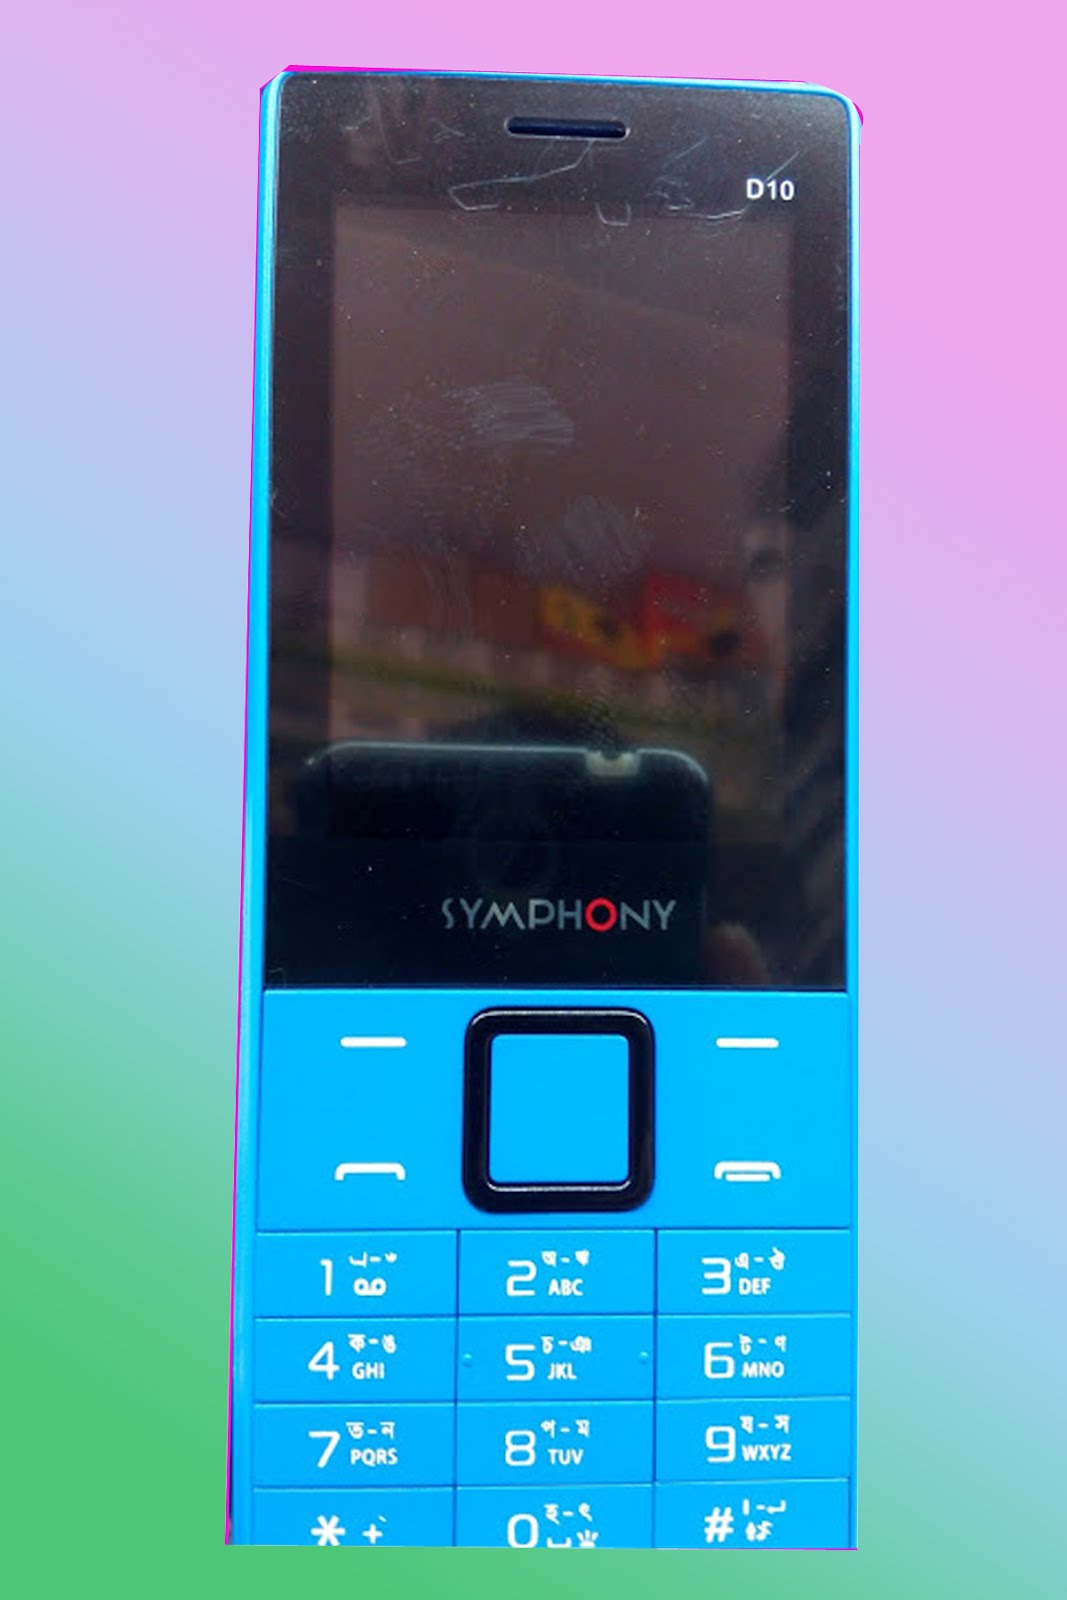 Symphony D10 MT6261 firmware file 100% tested